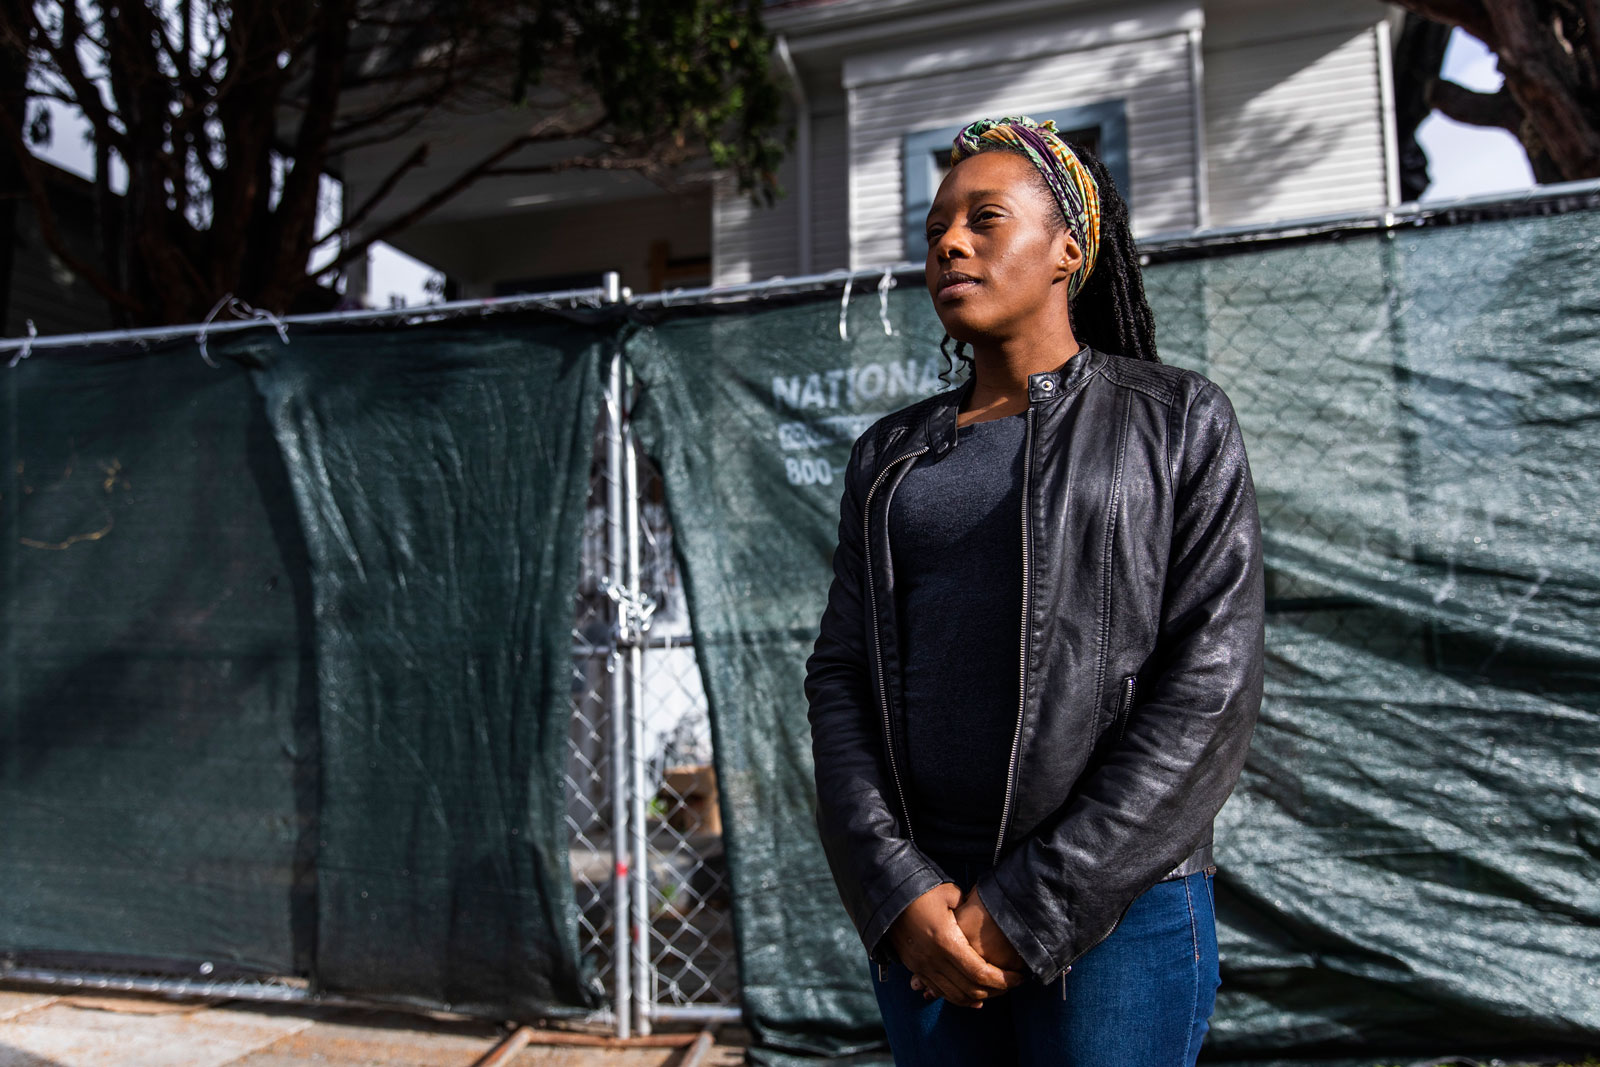 """Moms 4 Housing activist Dominique Walker standing in front of 2928 Magnolia Street, the house the group occupied starting in November 2019, declaring that housing is """"a human right,"""